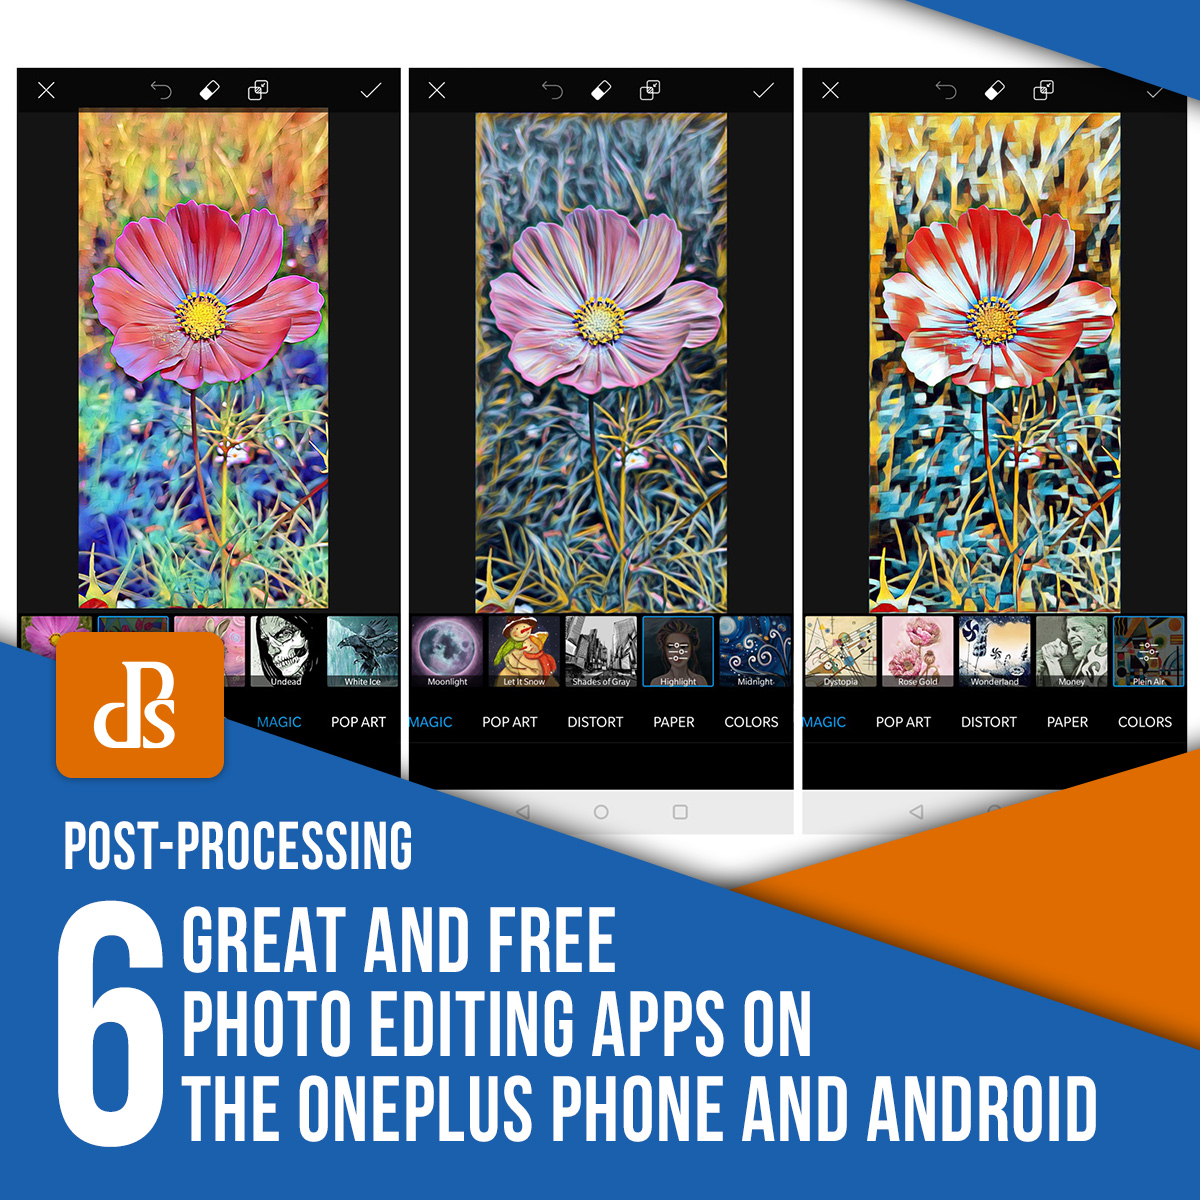 photo-editing-apps-on-the-oneplus-phone-android